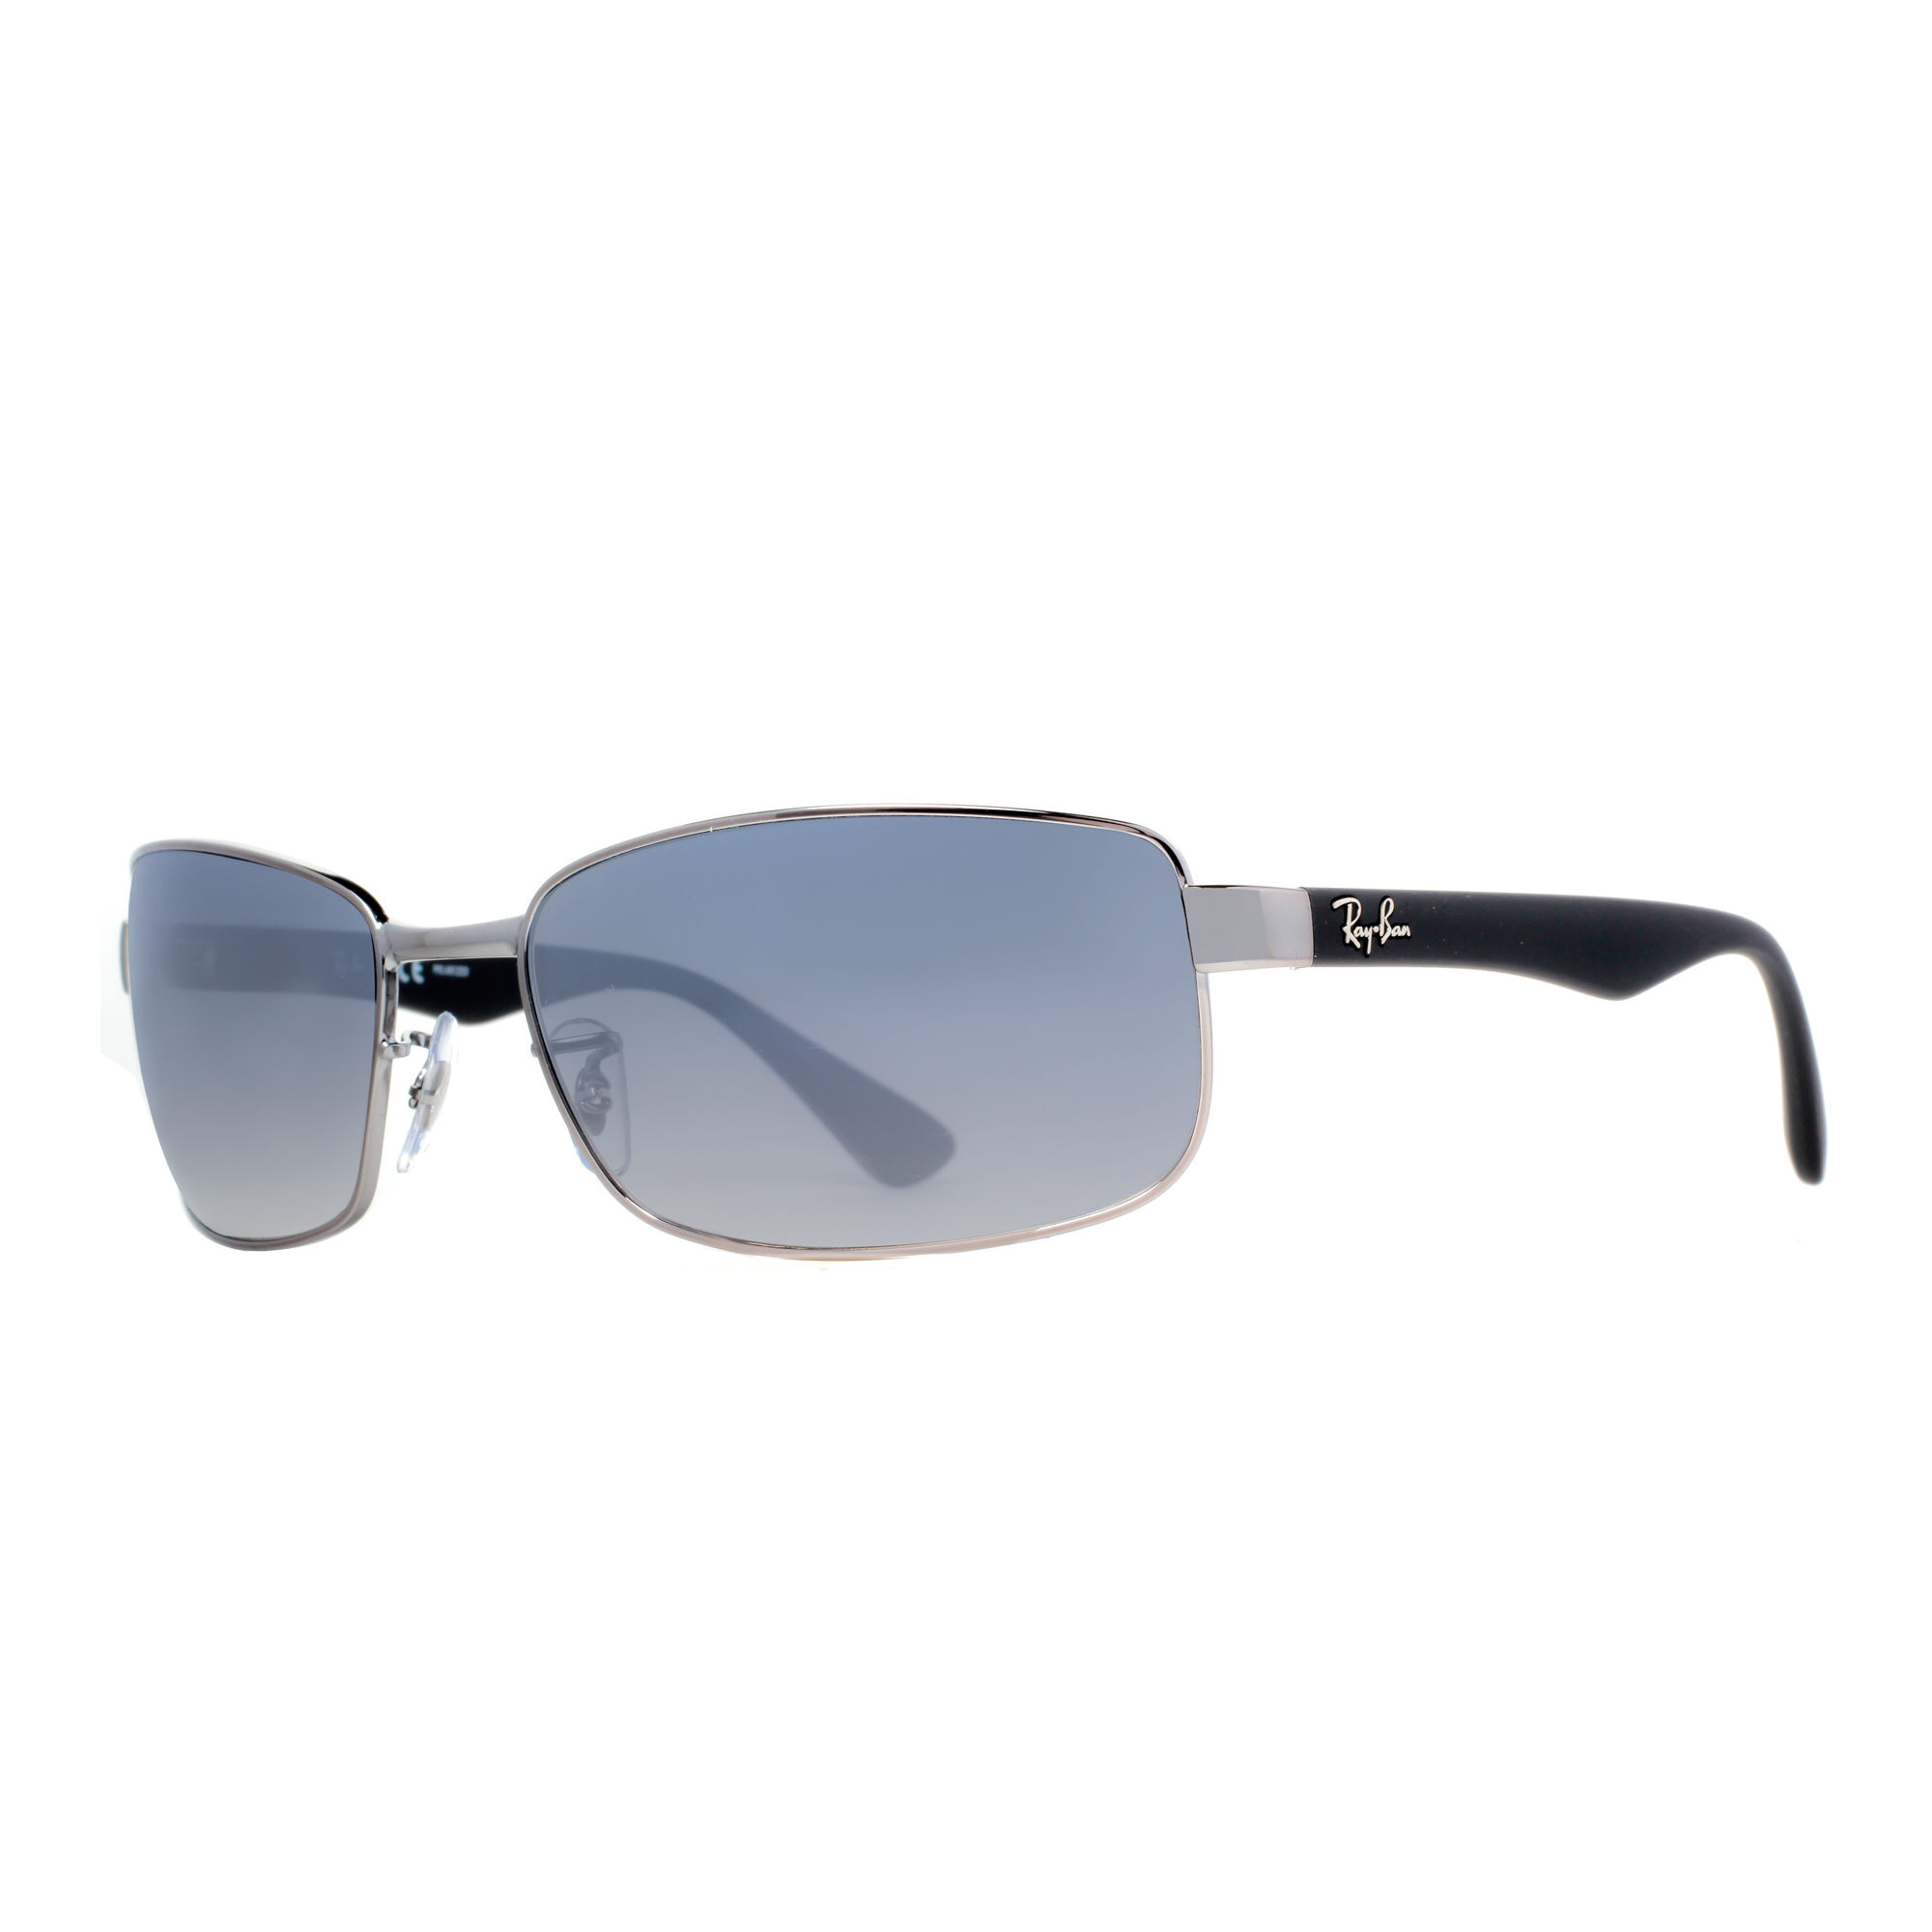 rb3478  Ray Ban RB 3478 004/78 63mm Gunmetal/Blue Polarized Wrap ...